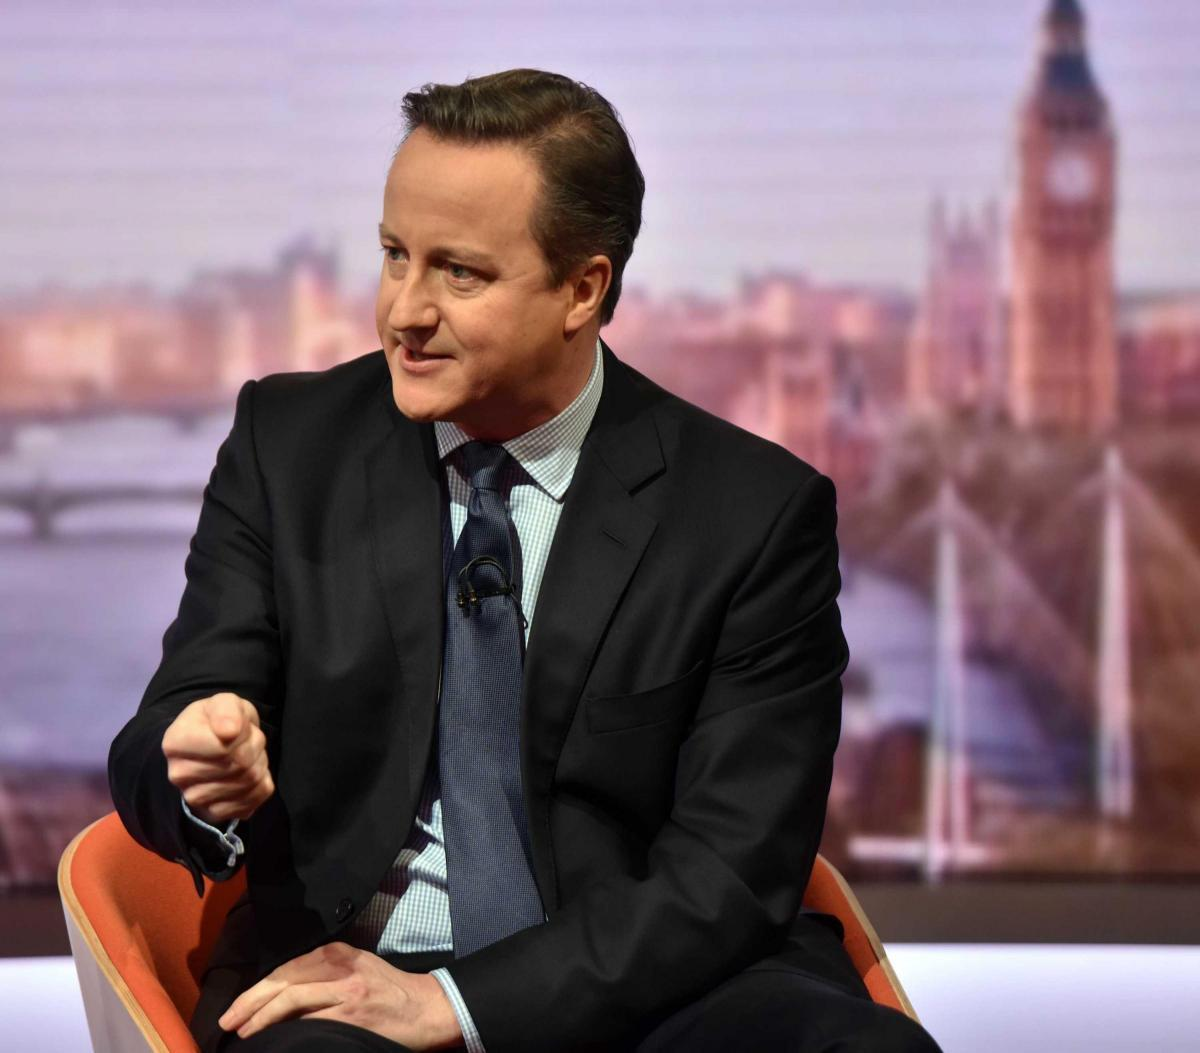 Prime Minister David Cameron making the case for Britain staying in the EU on BBC1's The Andrew Marr Show. Picture: JEFF OVERS/BBC/PA WIRE